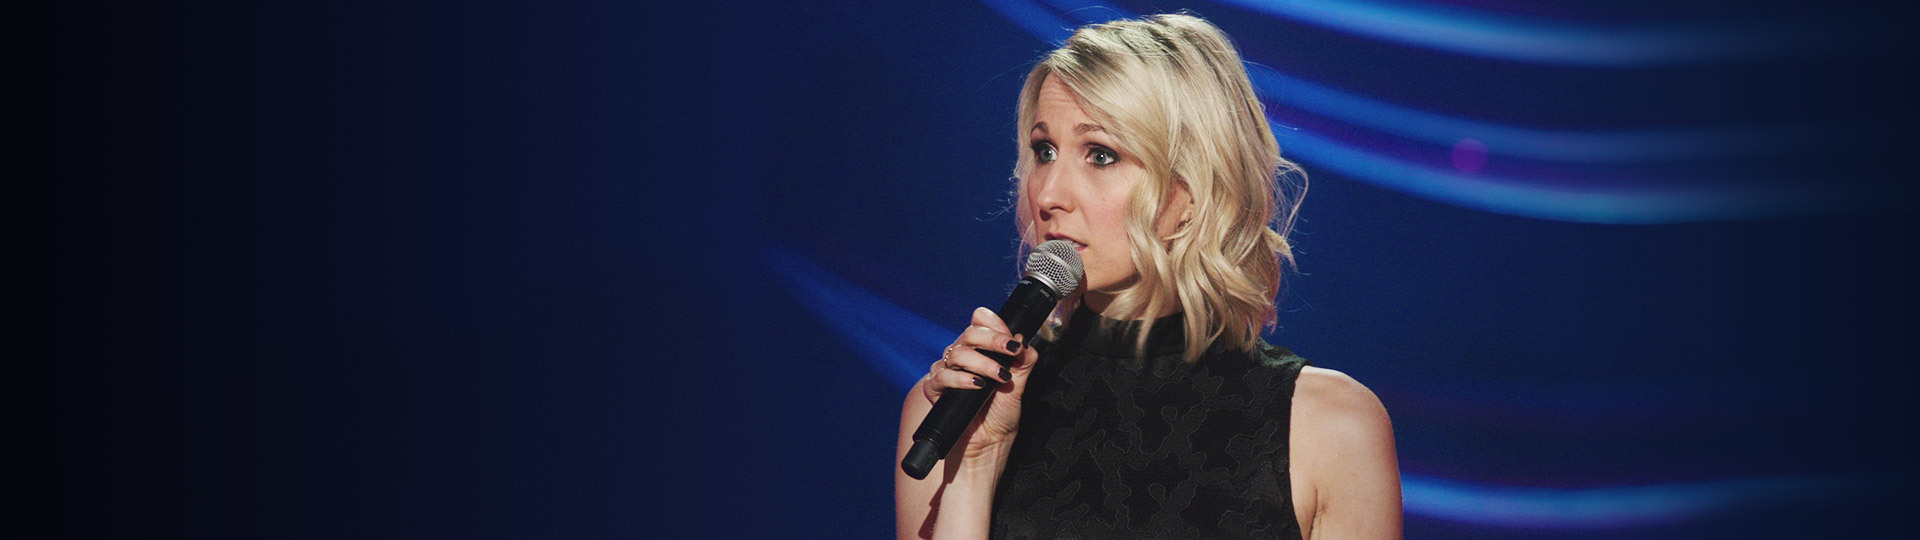 Nikki Glaser Stand Up Comedian Comedy Central Stand Up